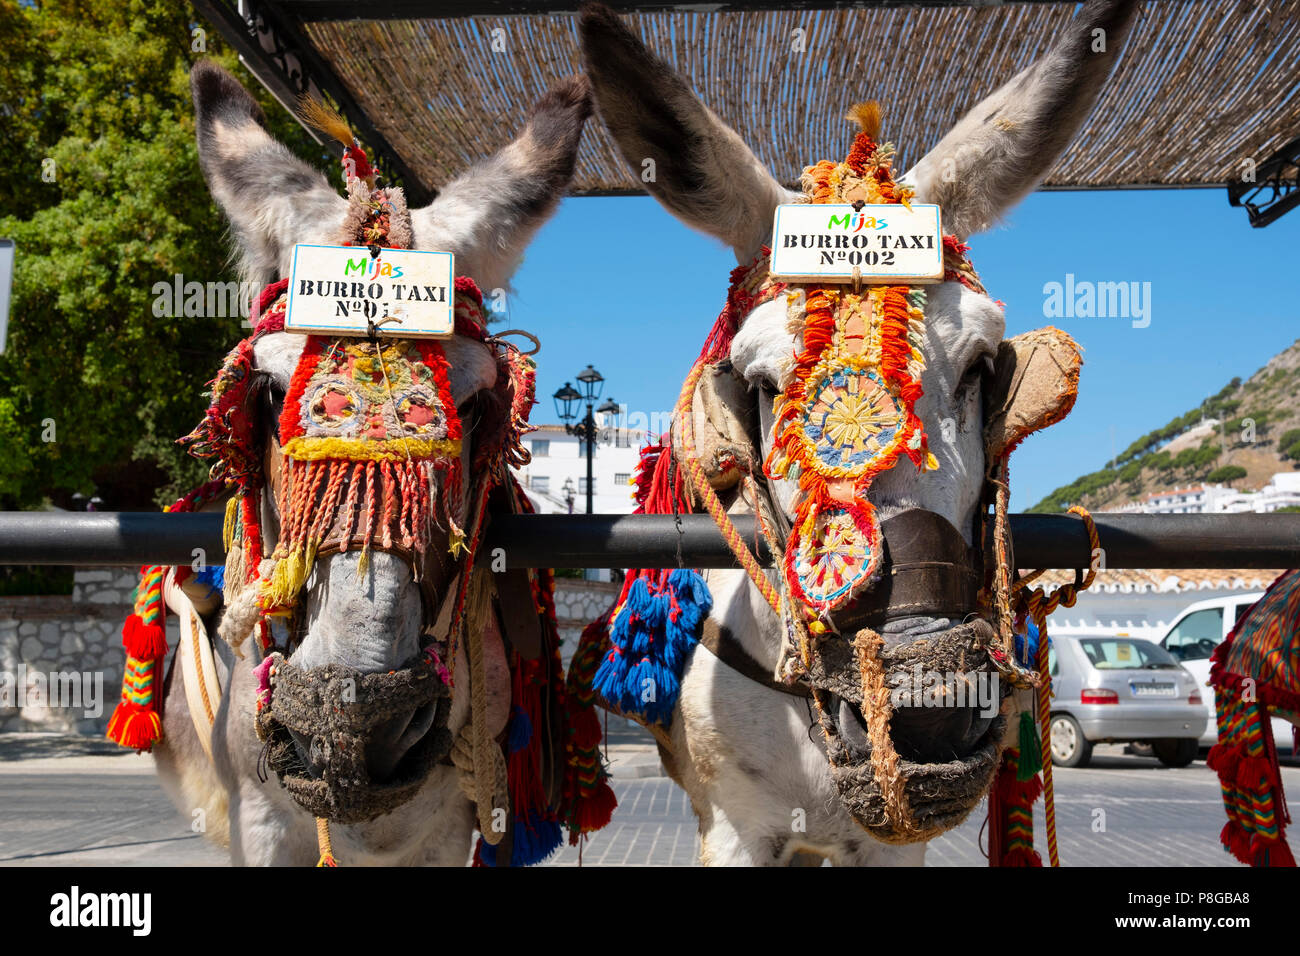 Donkey Taxis. Typical burro taxi, white village Mijas. Málaga province Costa del Sol, Andalusia. Southern Spain Europe - Stock Image